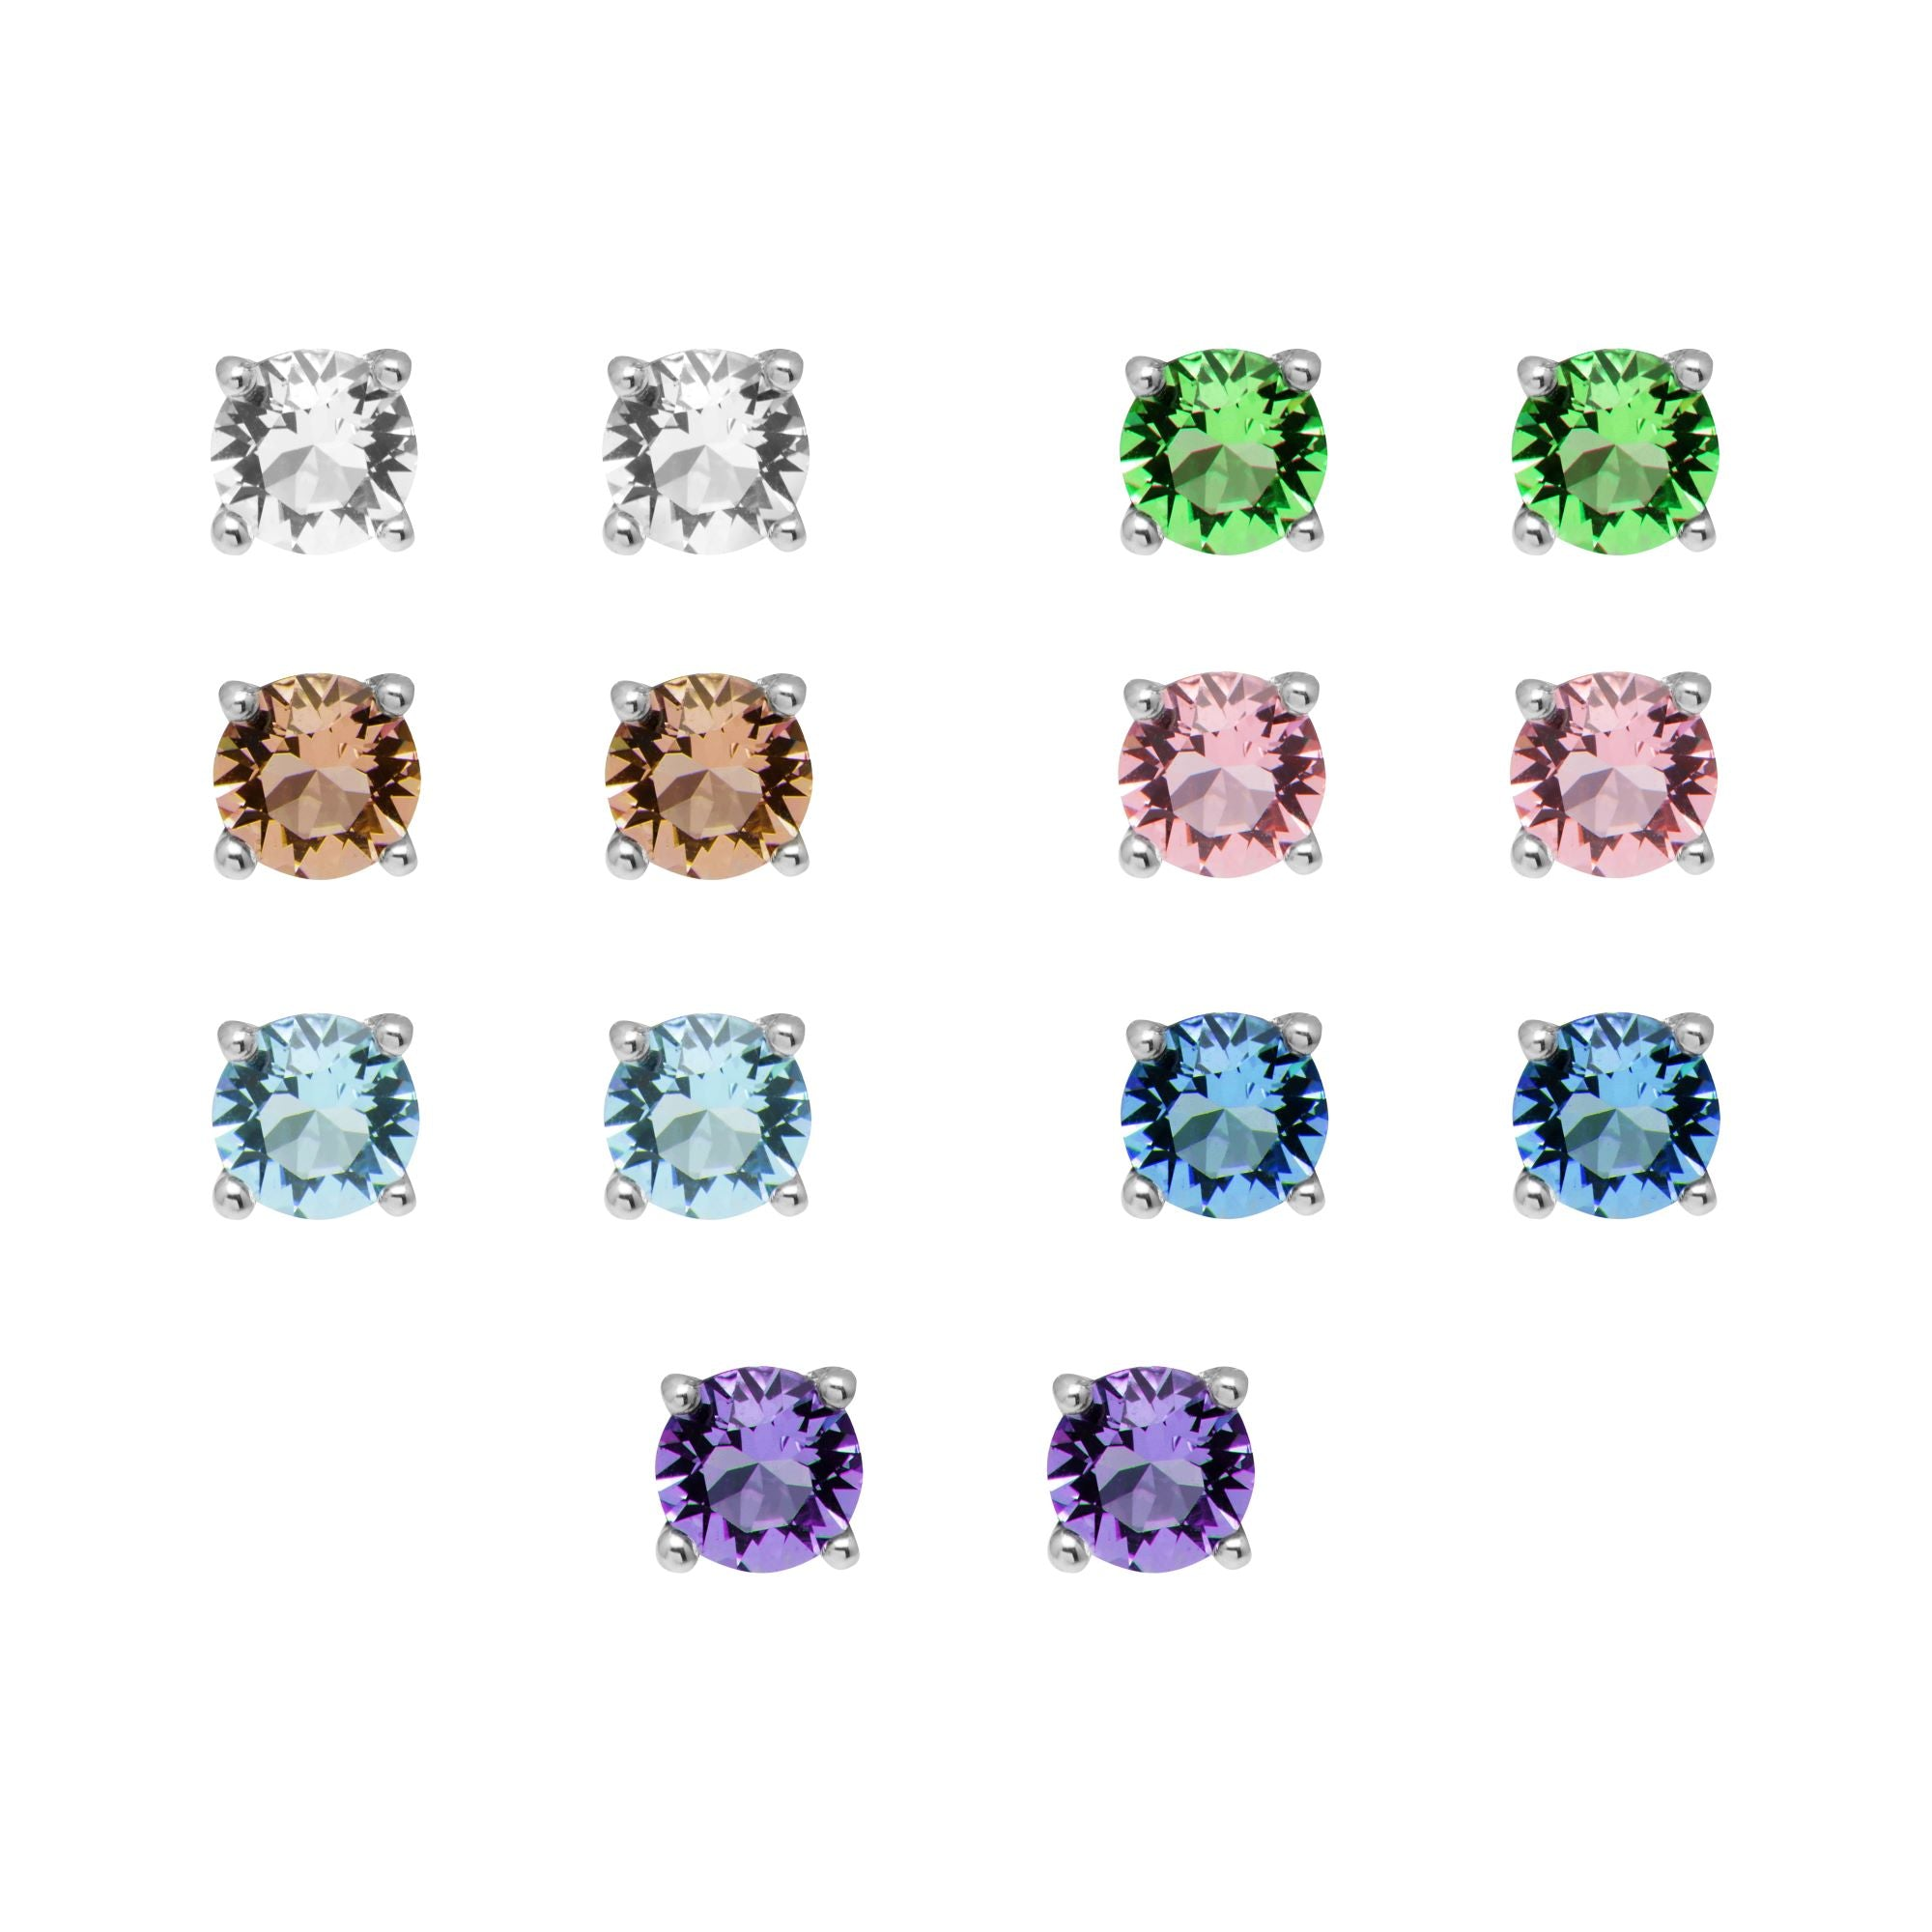 Aura Silver plated set of 7 Swarovski crystal earrings - Harpson Accessories